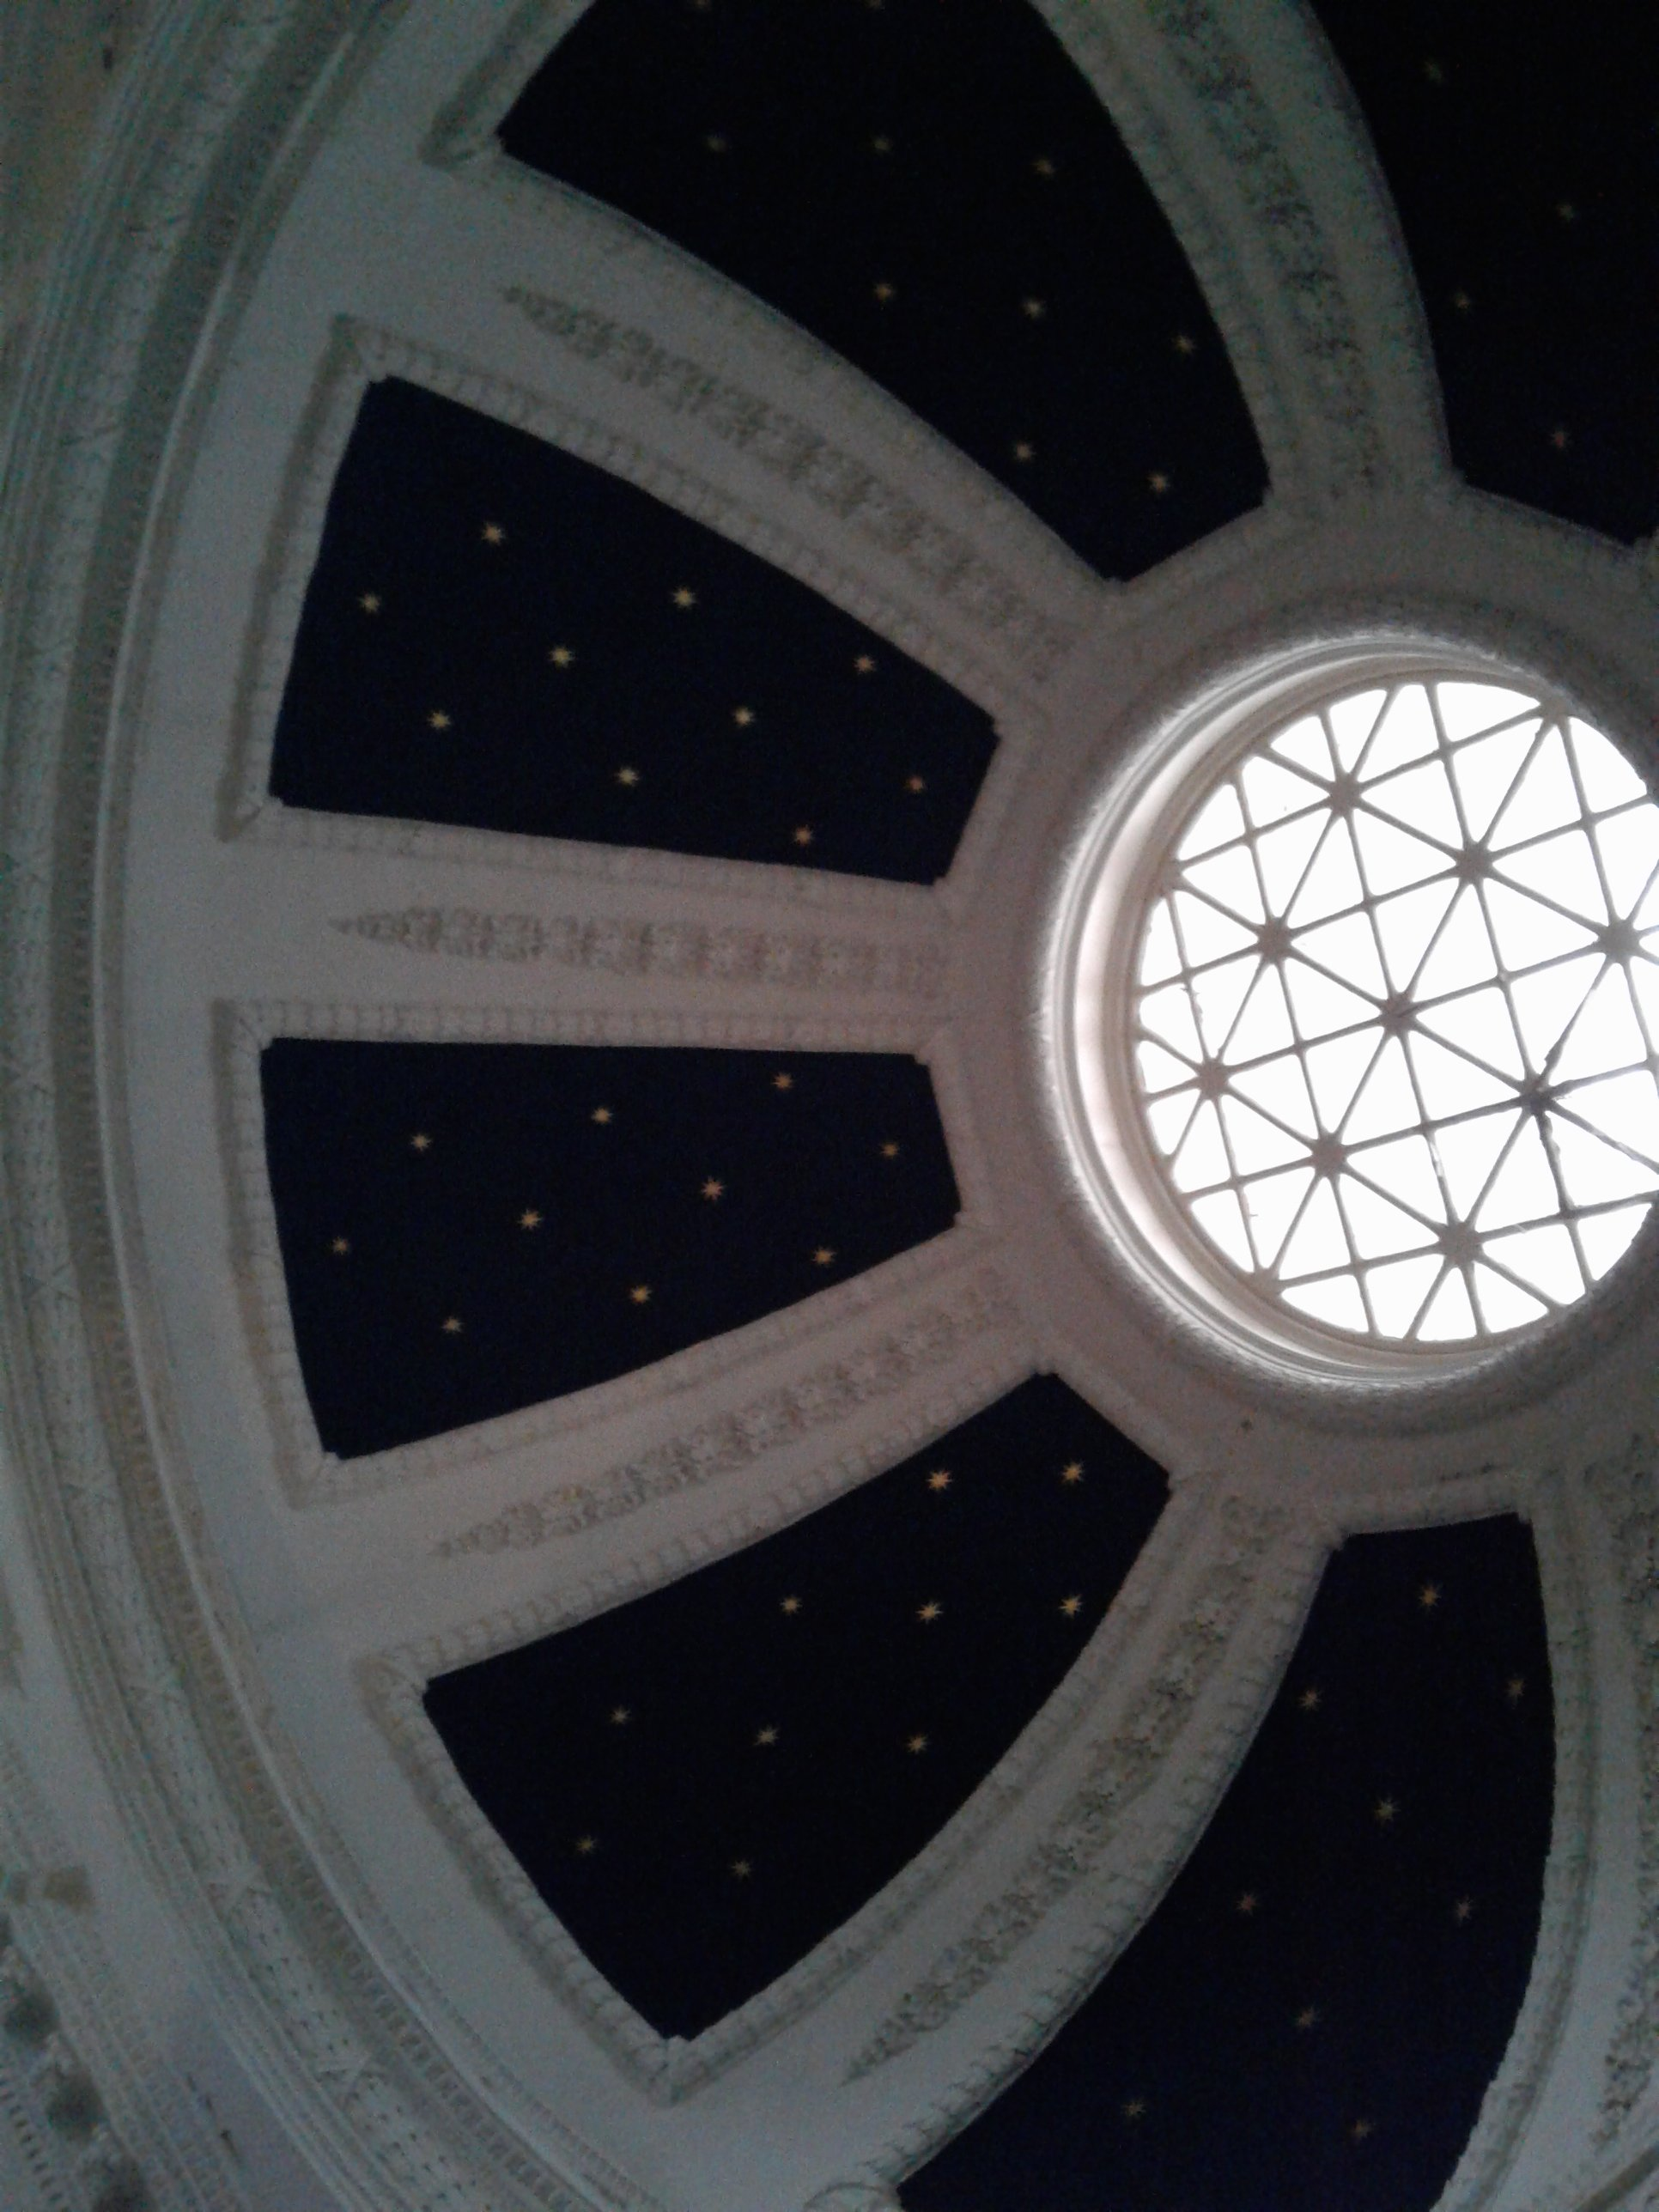 Historic Jones Memorial Library Interior View of Dome. Glass skylight surrounded by panels that look like stars in the night sky, with molding around each panel.